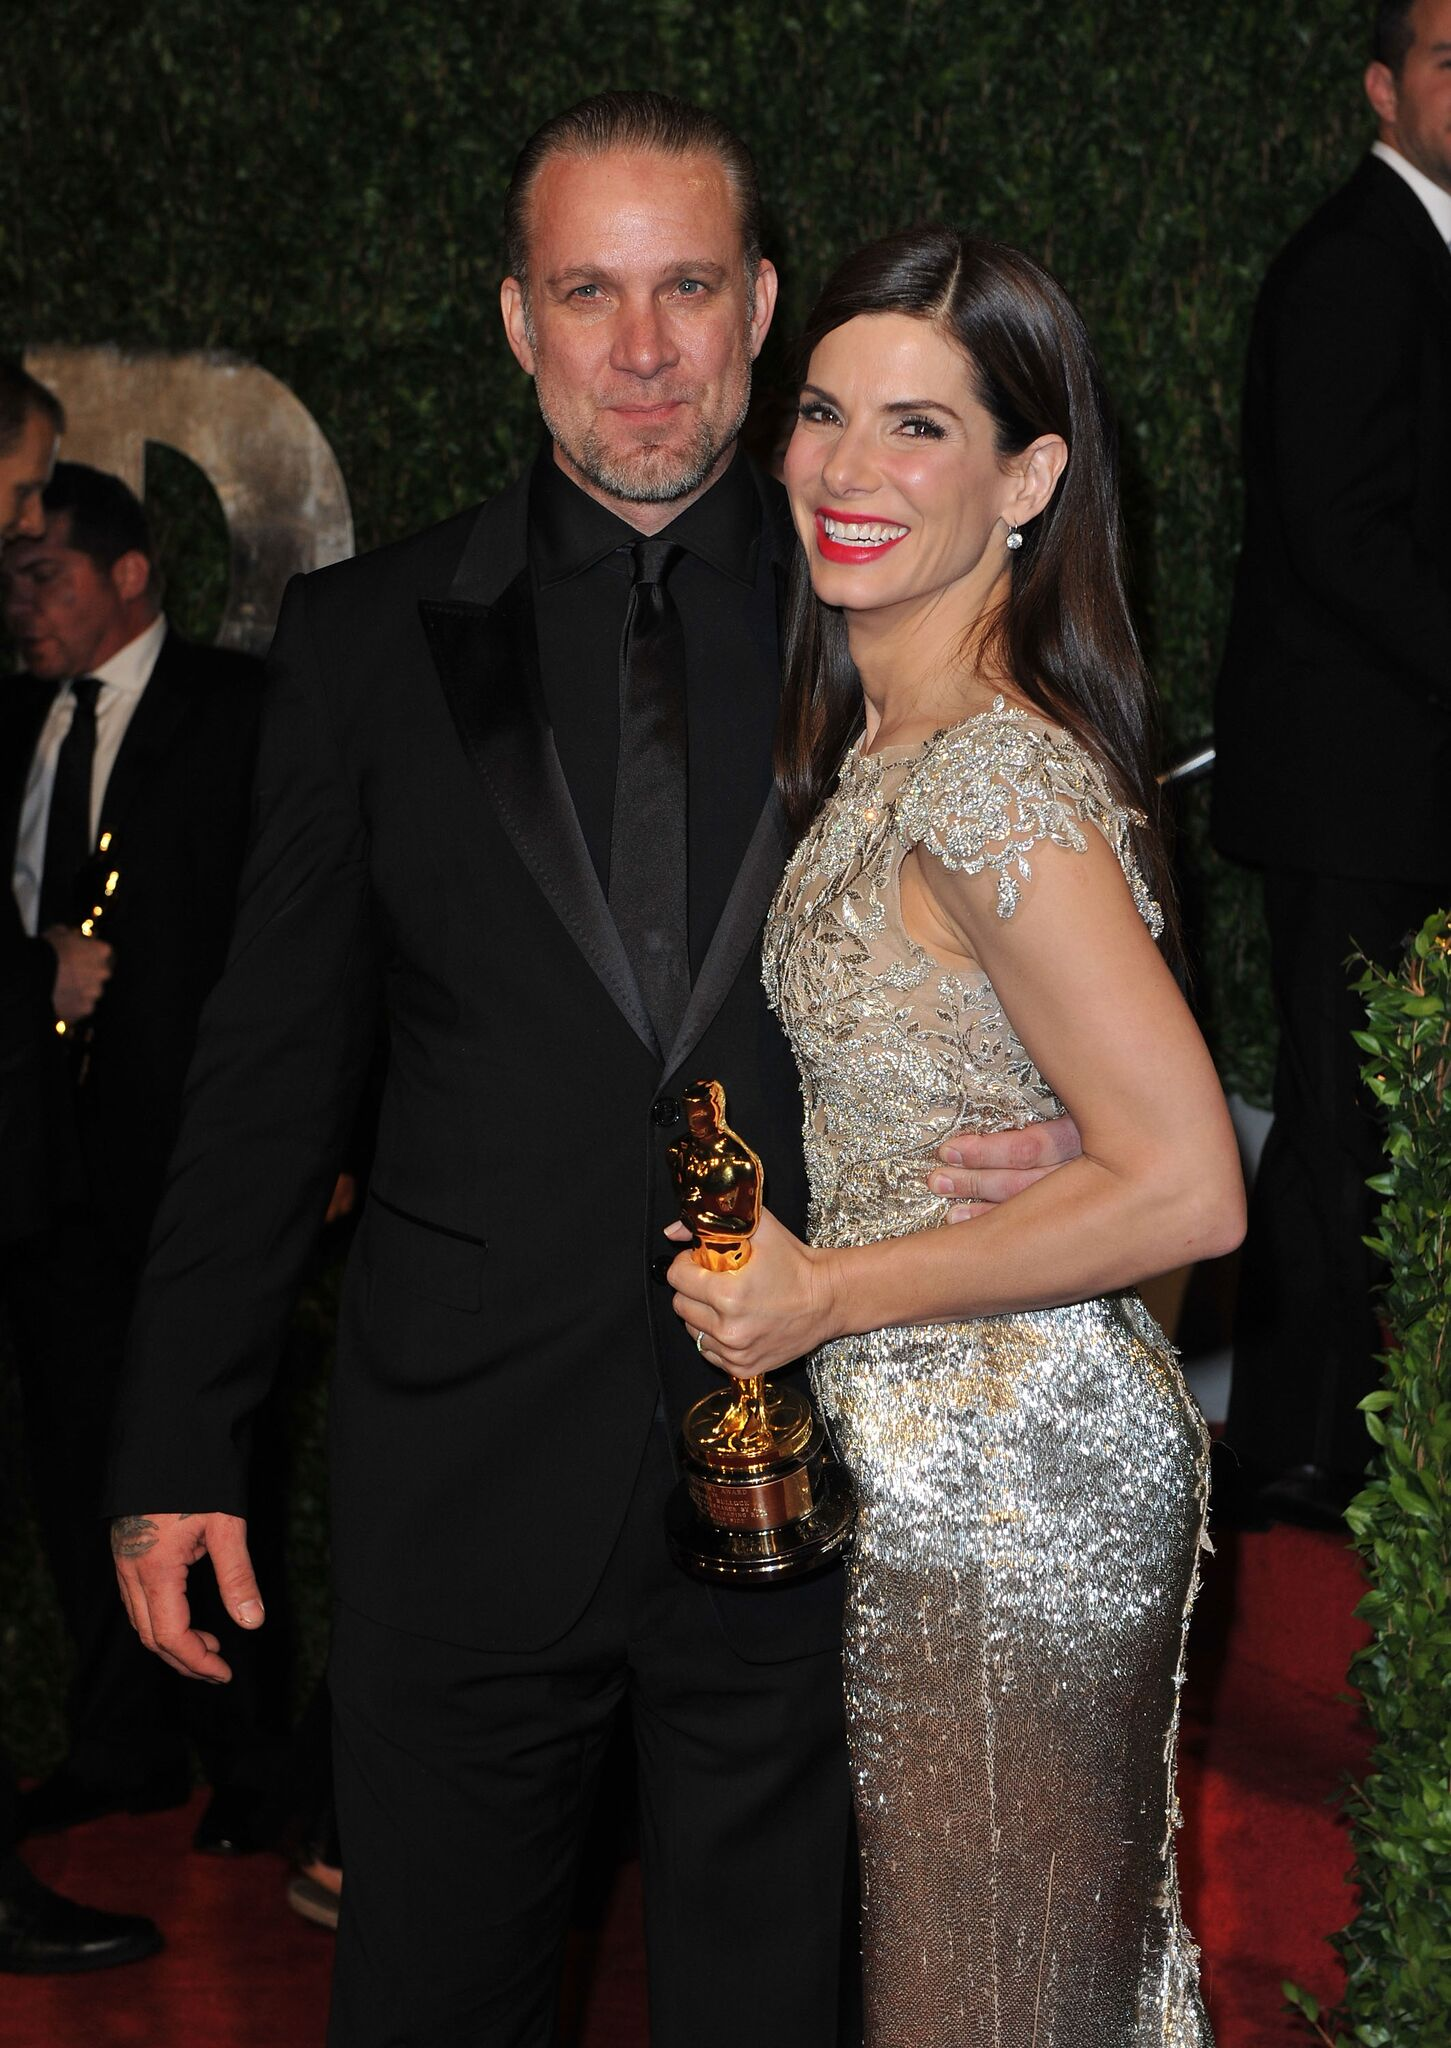 Jesse James and Sandra Bullock at the 2010 Vanity Fair Oscar Party | Getty Images